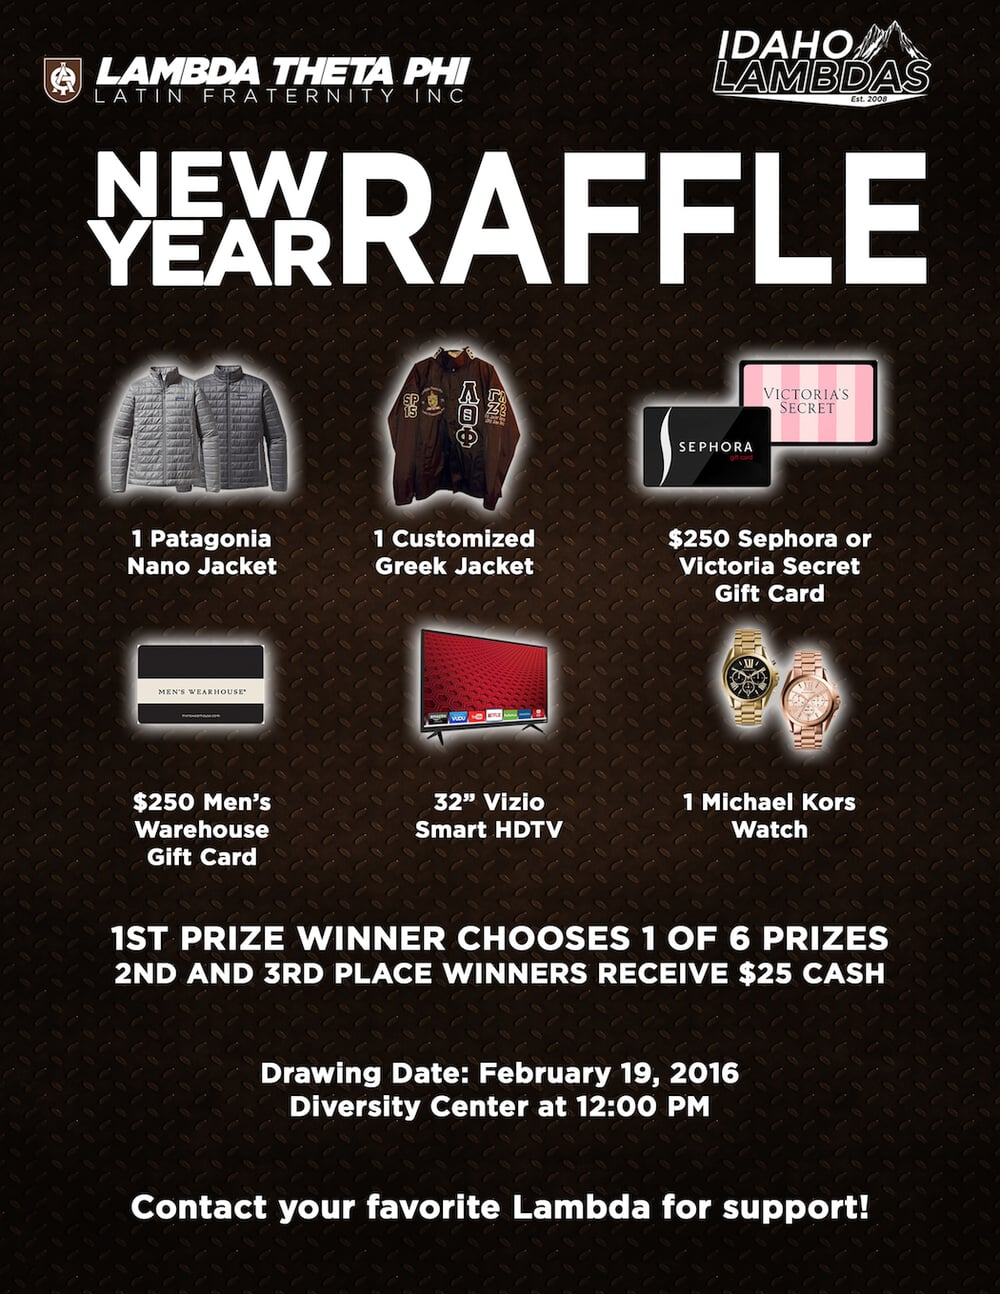 New Year Raffle v2.jpg